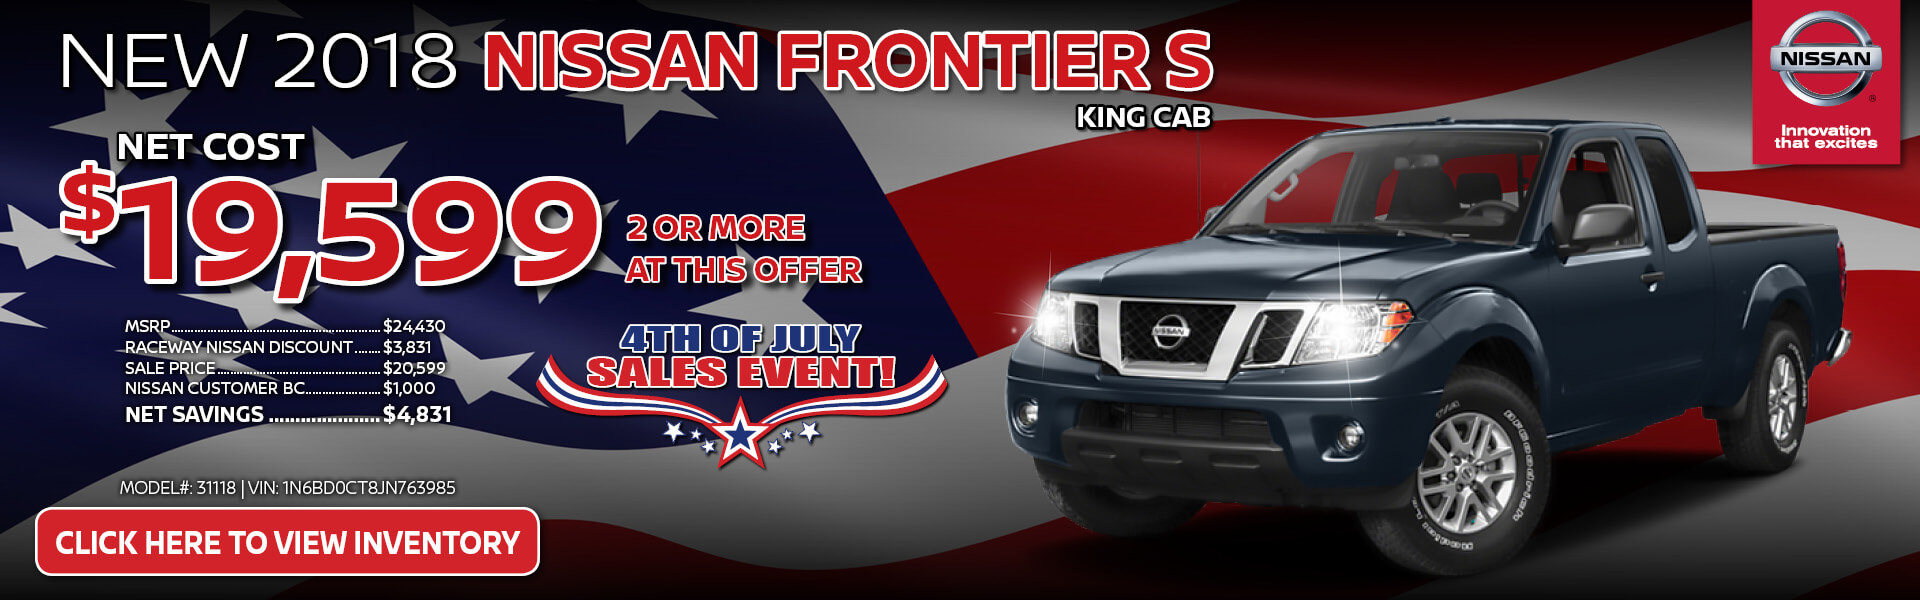 Nissan Frontier $19,599 Purchase